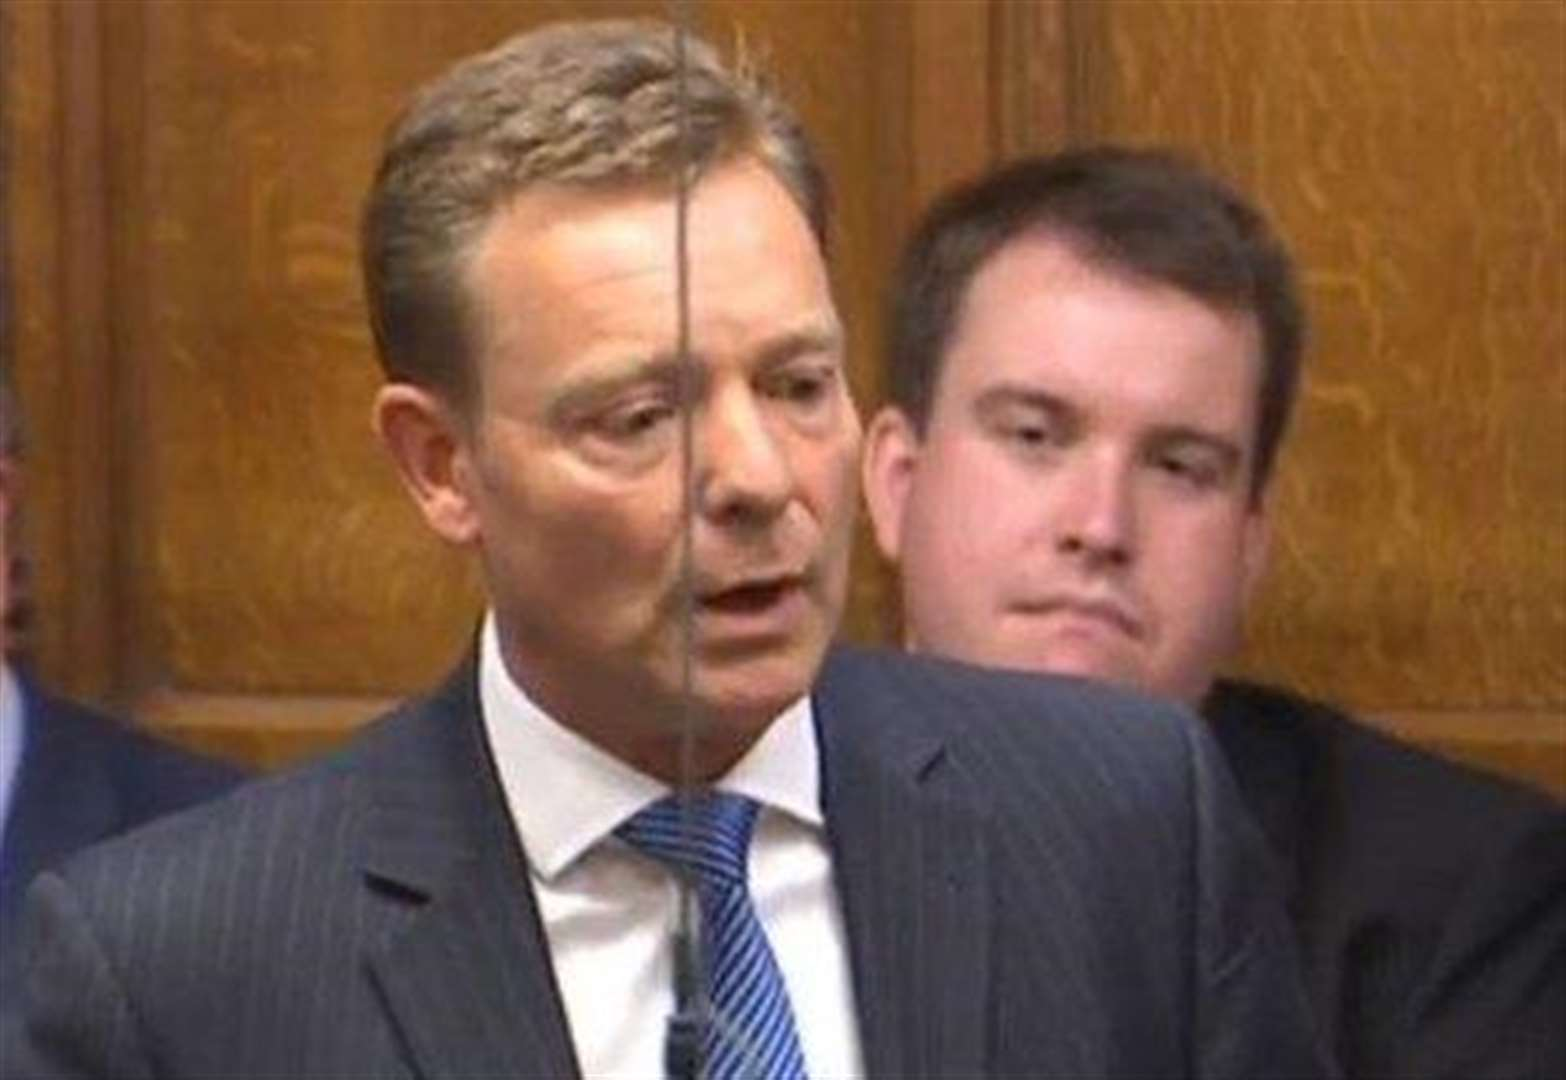 MP tells government to foot bill for failed ferry deal